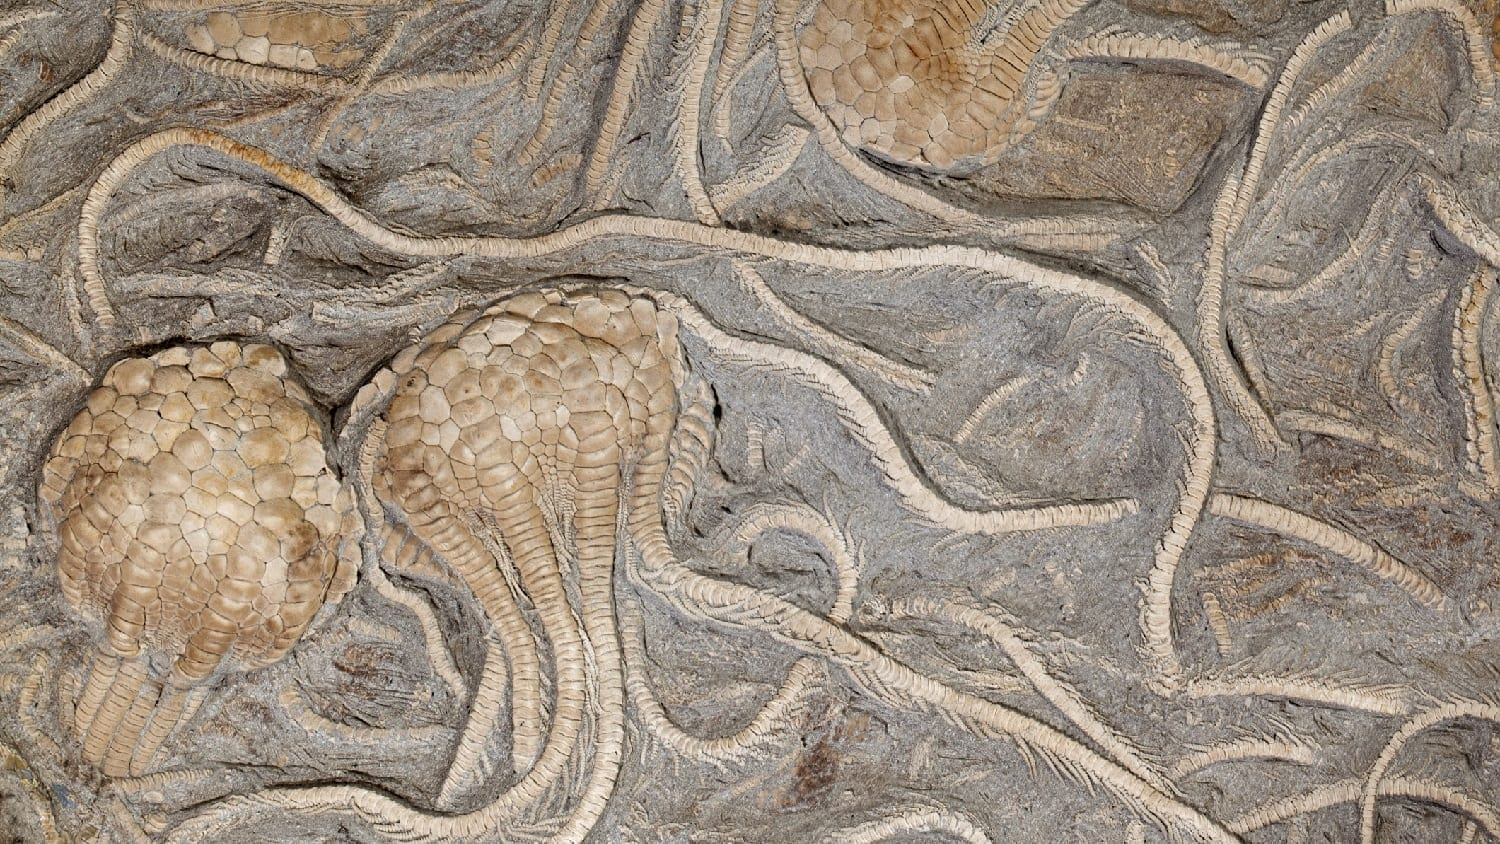 Complete Fossilized Crinoids: Photo 19004163 © Anthony Aneese Totah Jr | Dreamstime.com